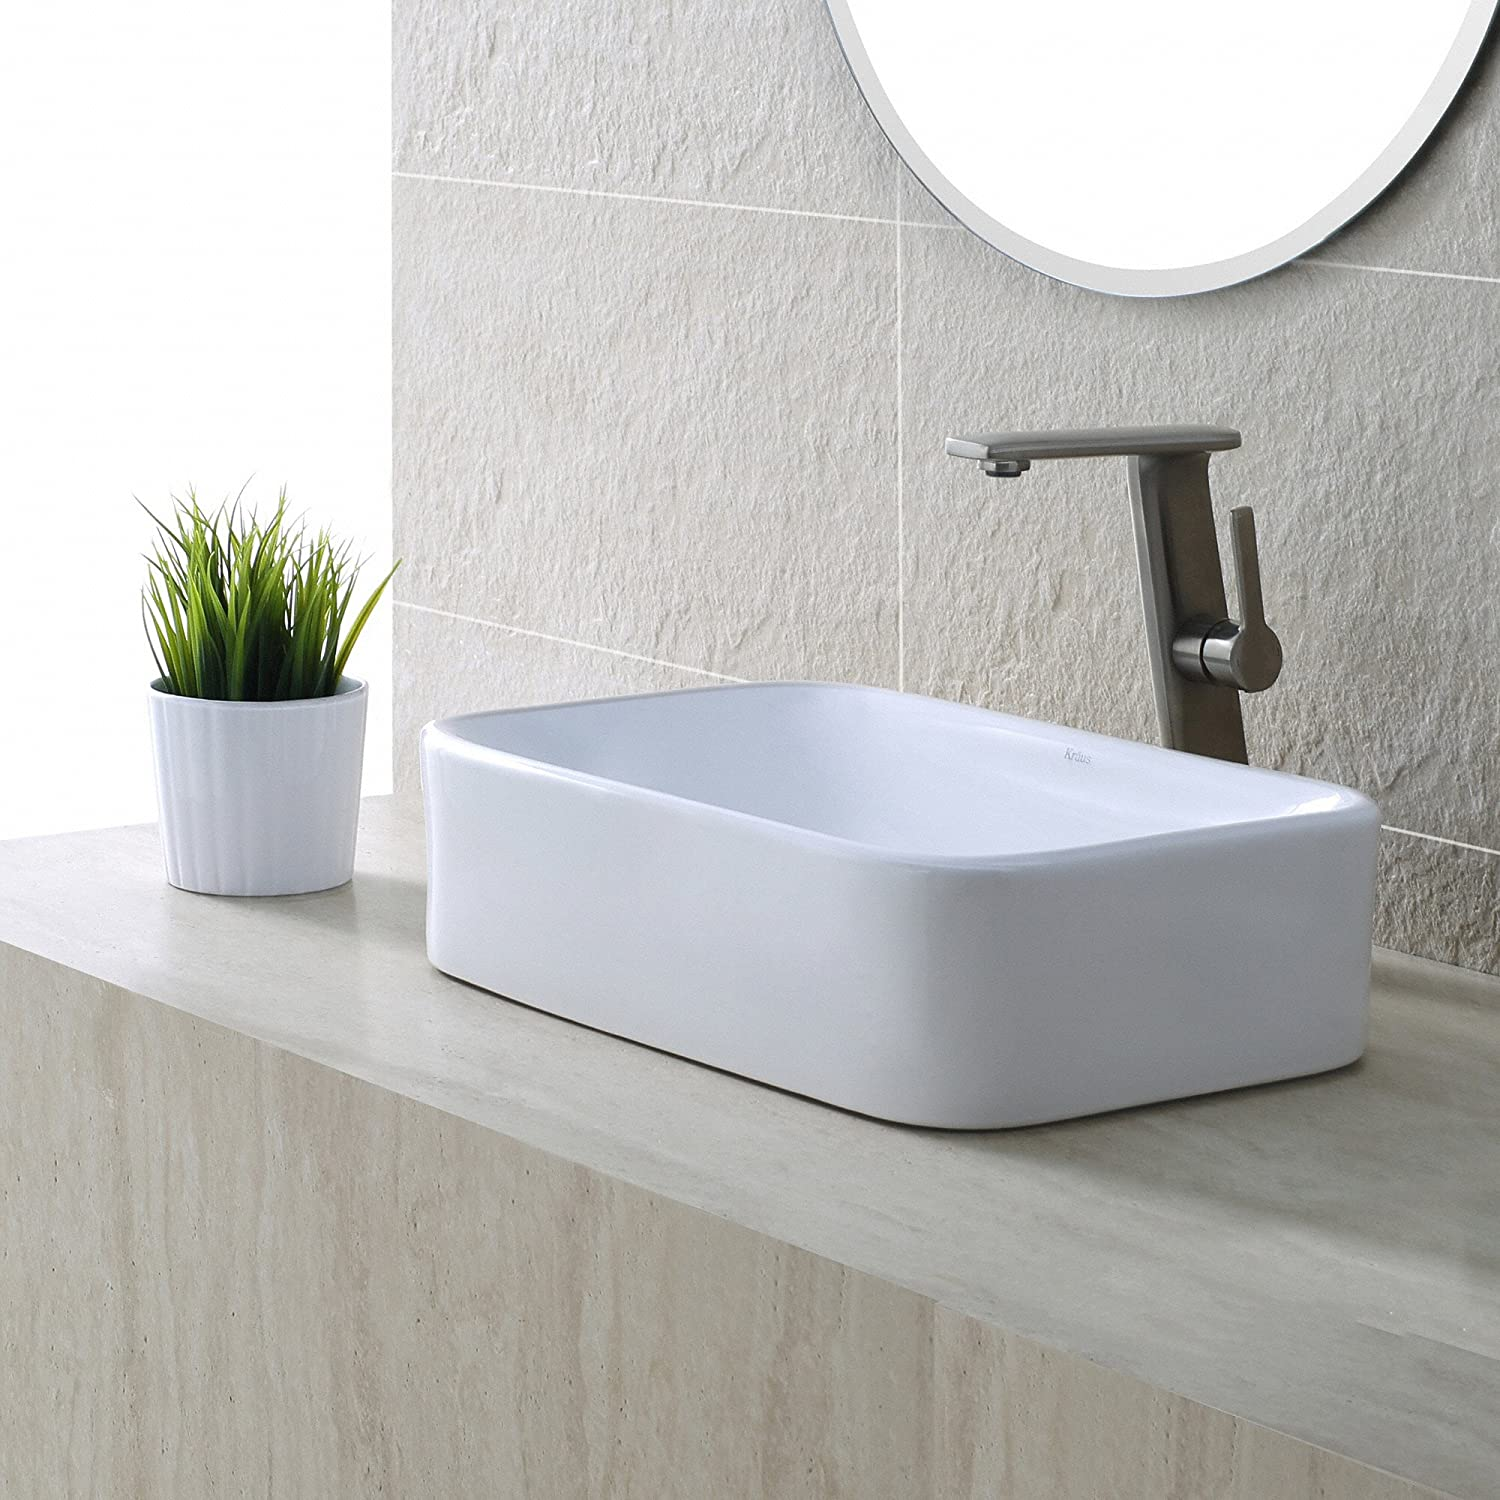 Bathroom sink rectangular - Kraus Kcv 122 White Rectangular Ceramic Bathroom Sink Vessel Sinks Amazon Com